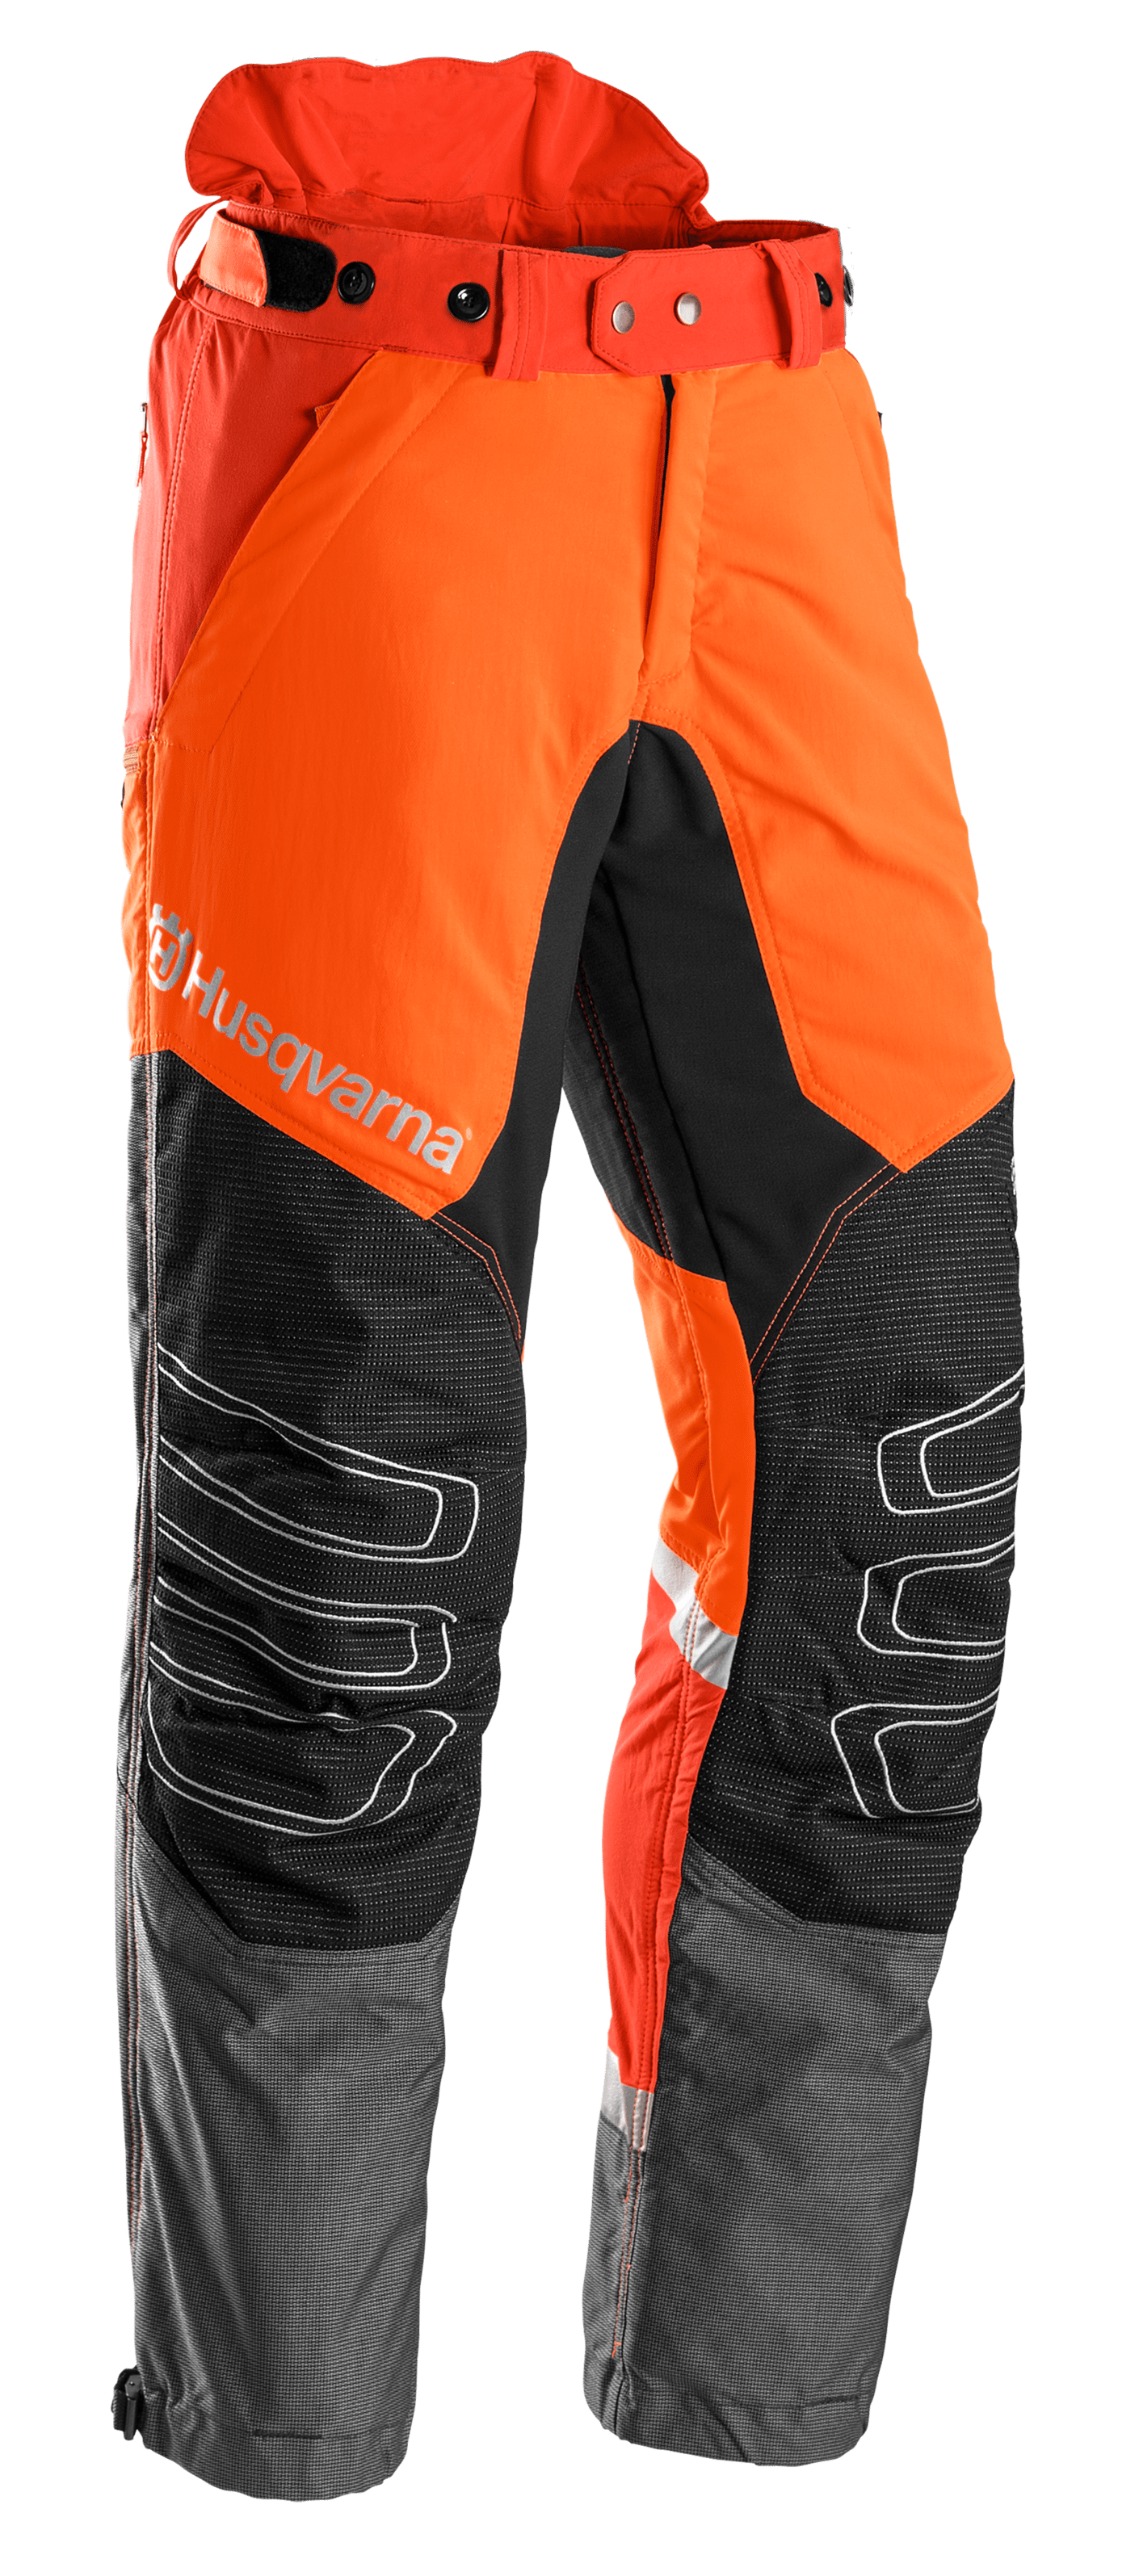 Technical Extreme Waist trousers